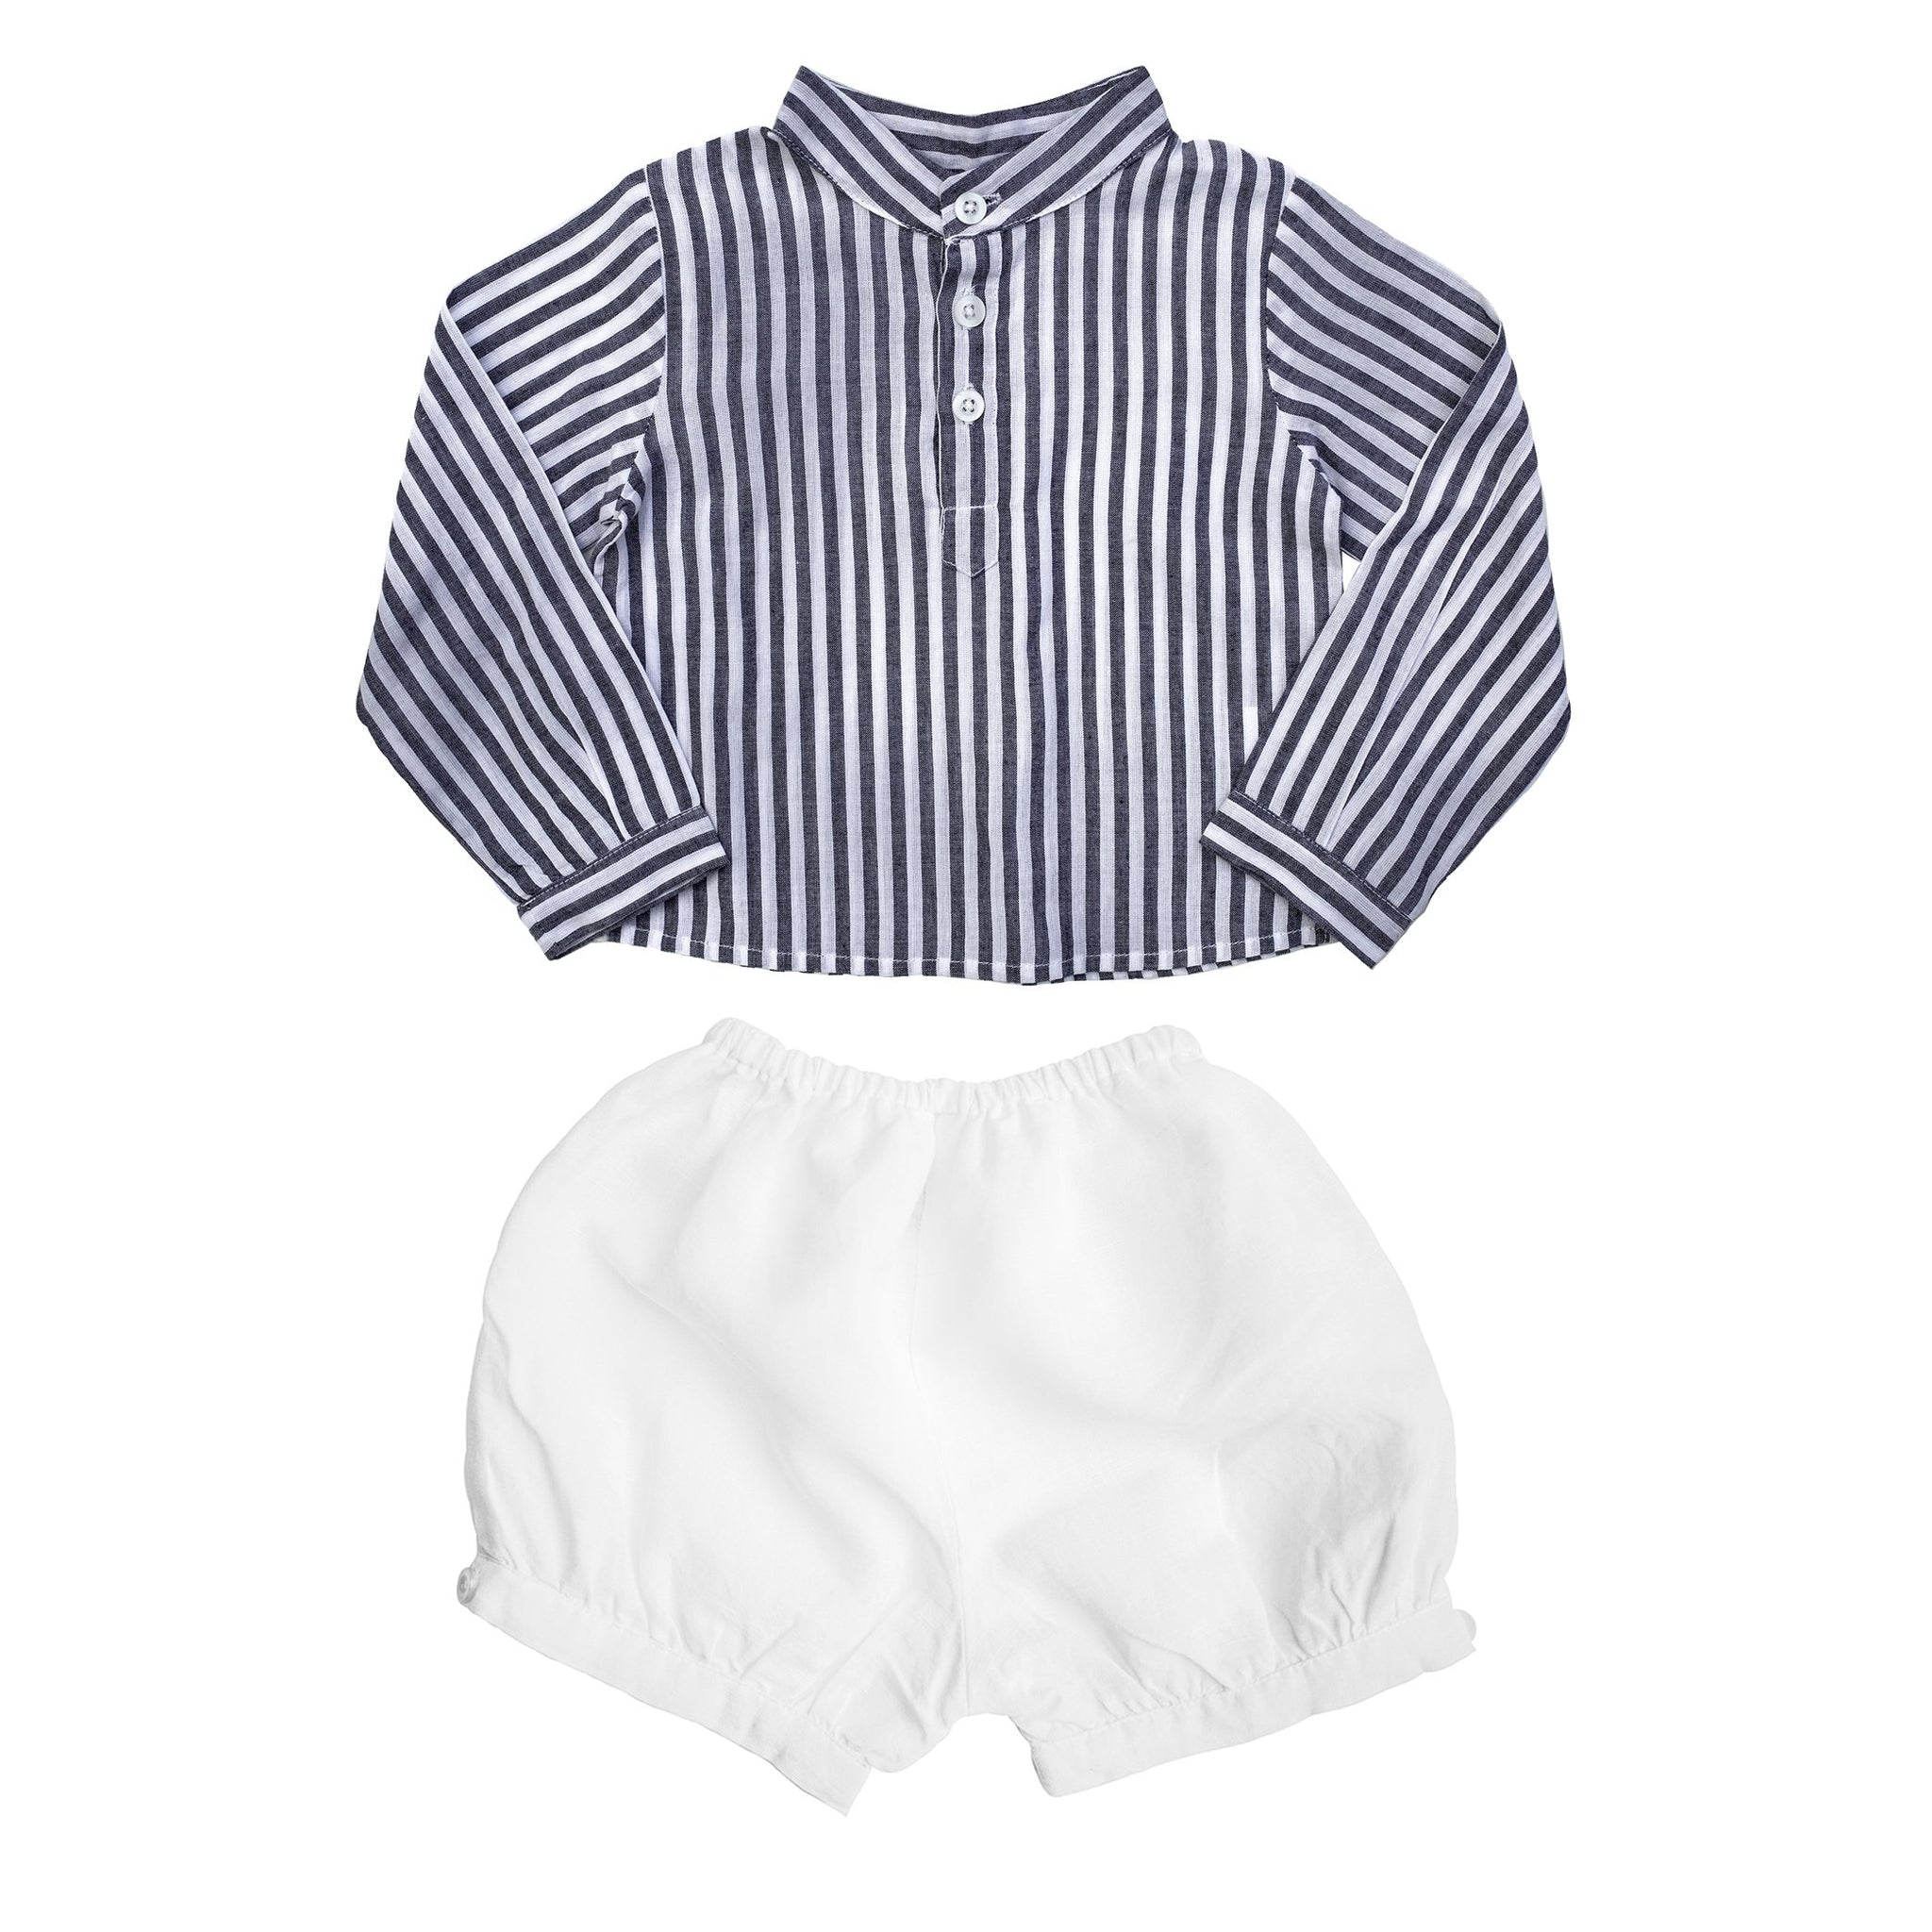 Gift set | Boys Harbor Island Shirt and White Linen Short